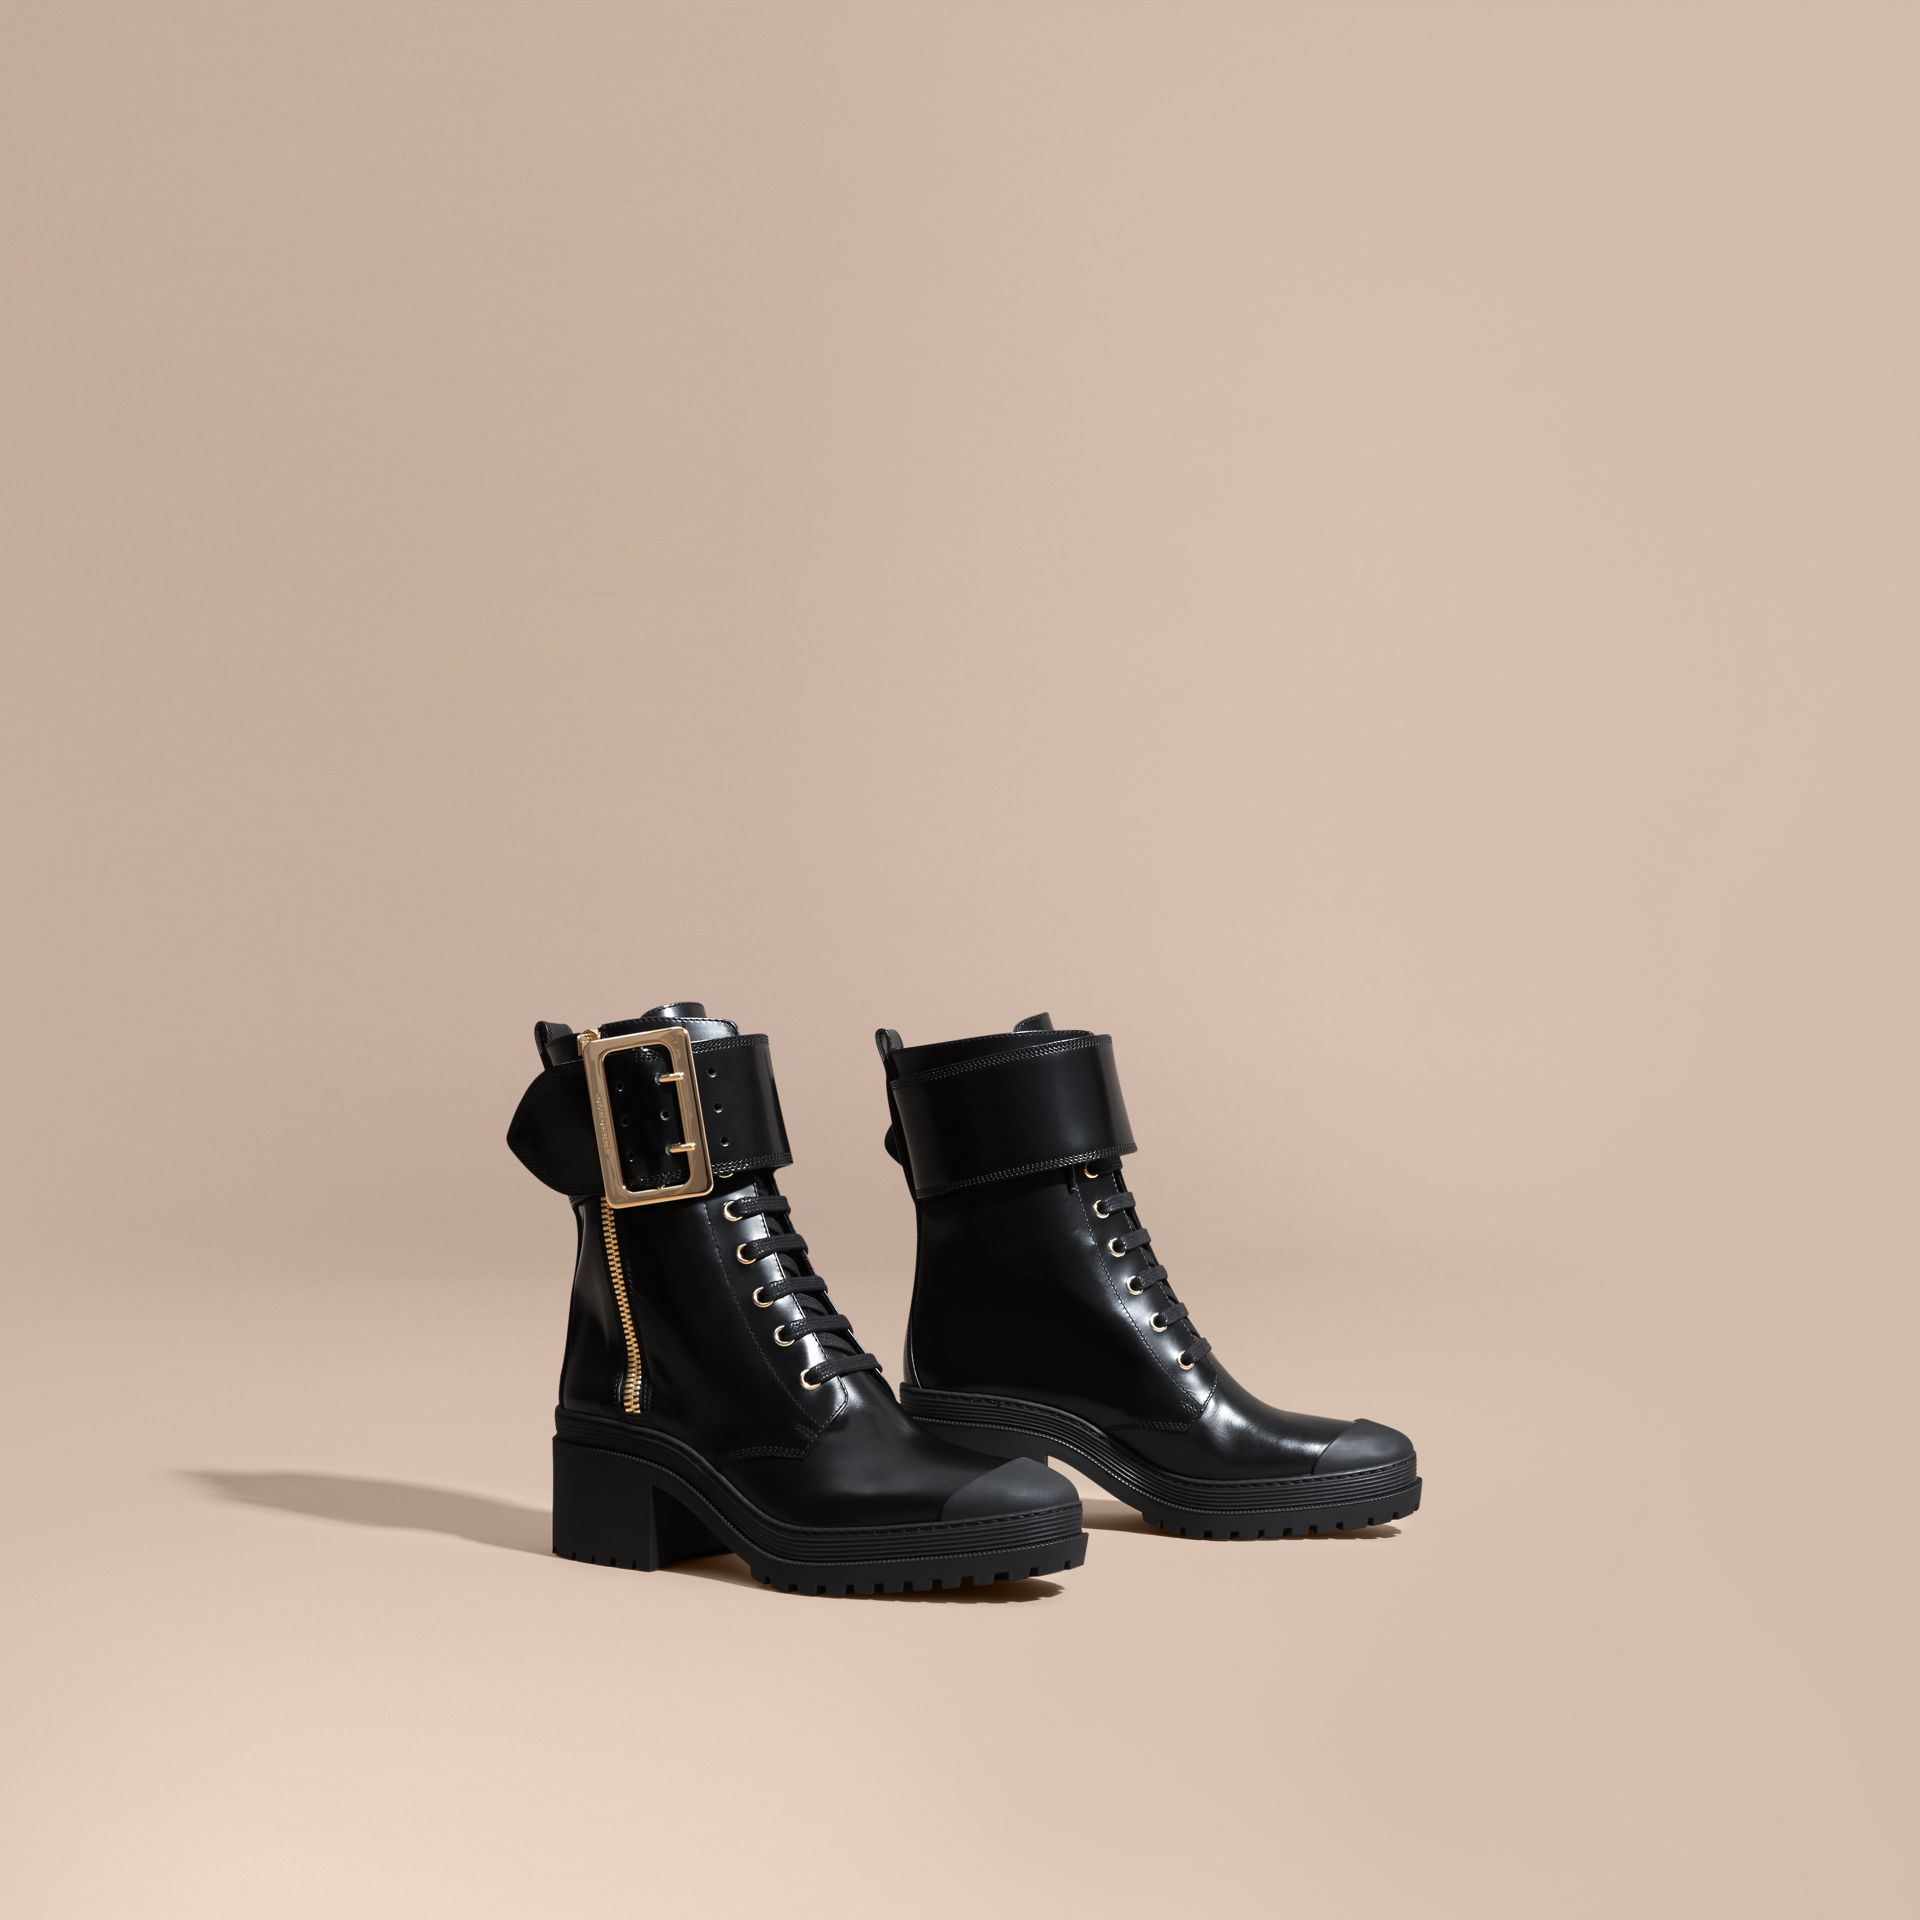 Black Leather Buckle Detail Boots Black - gallery image 1